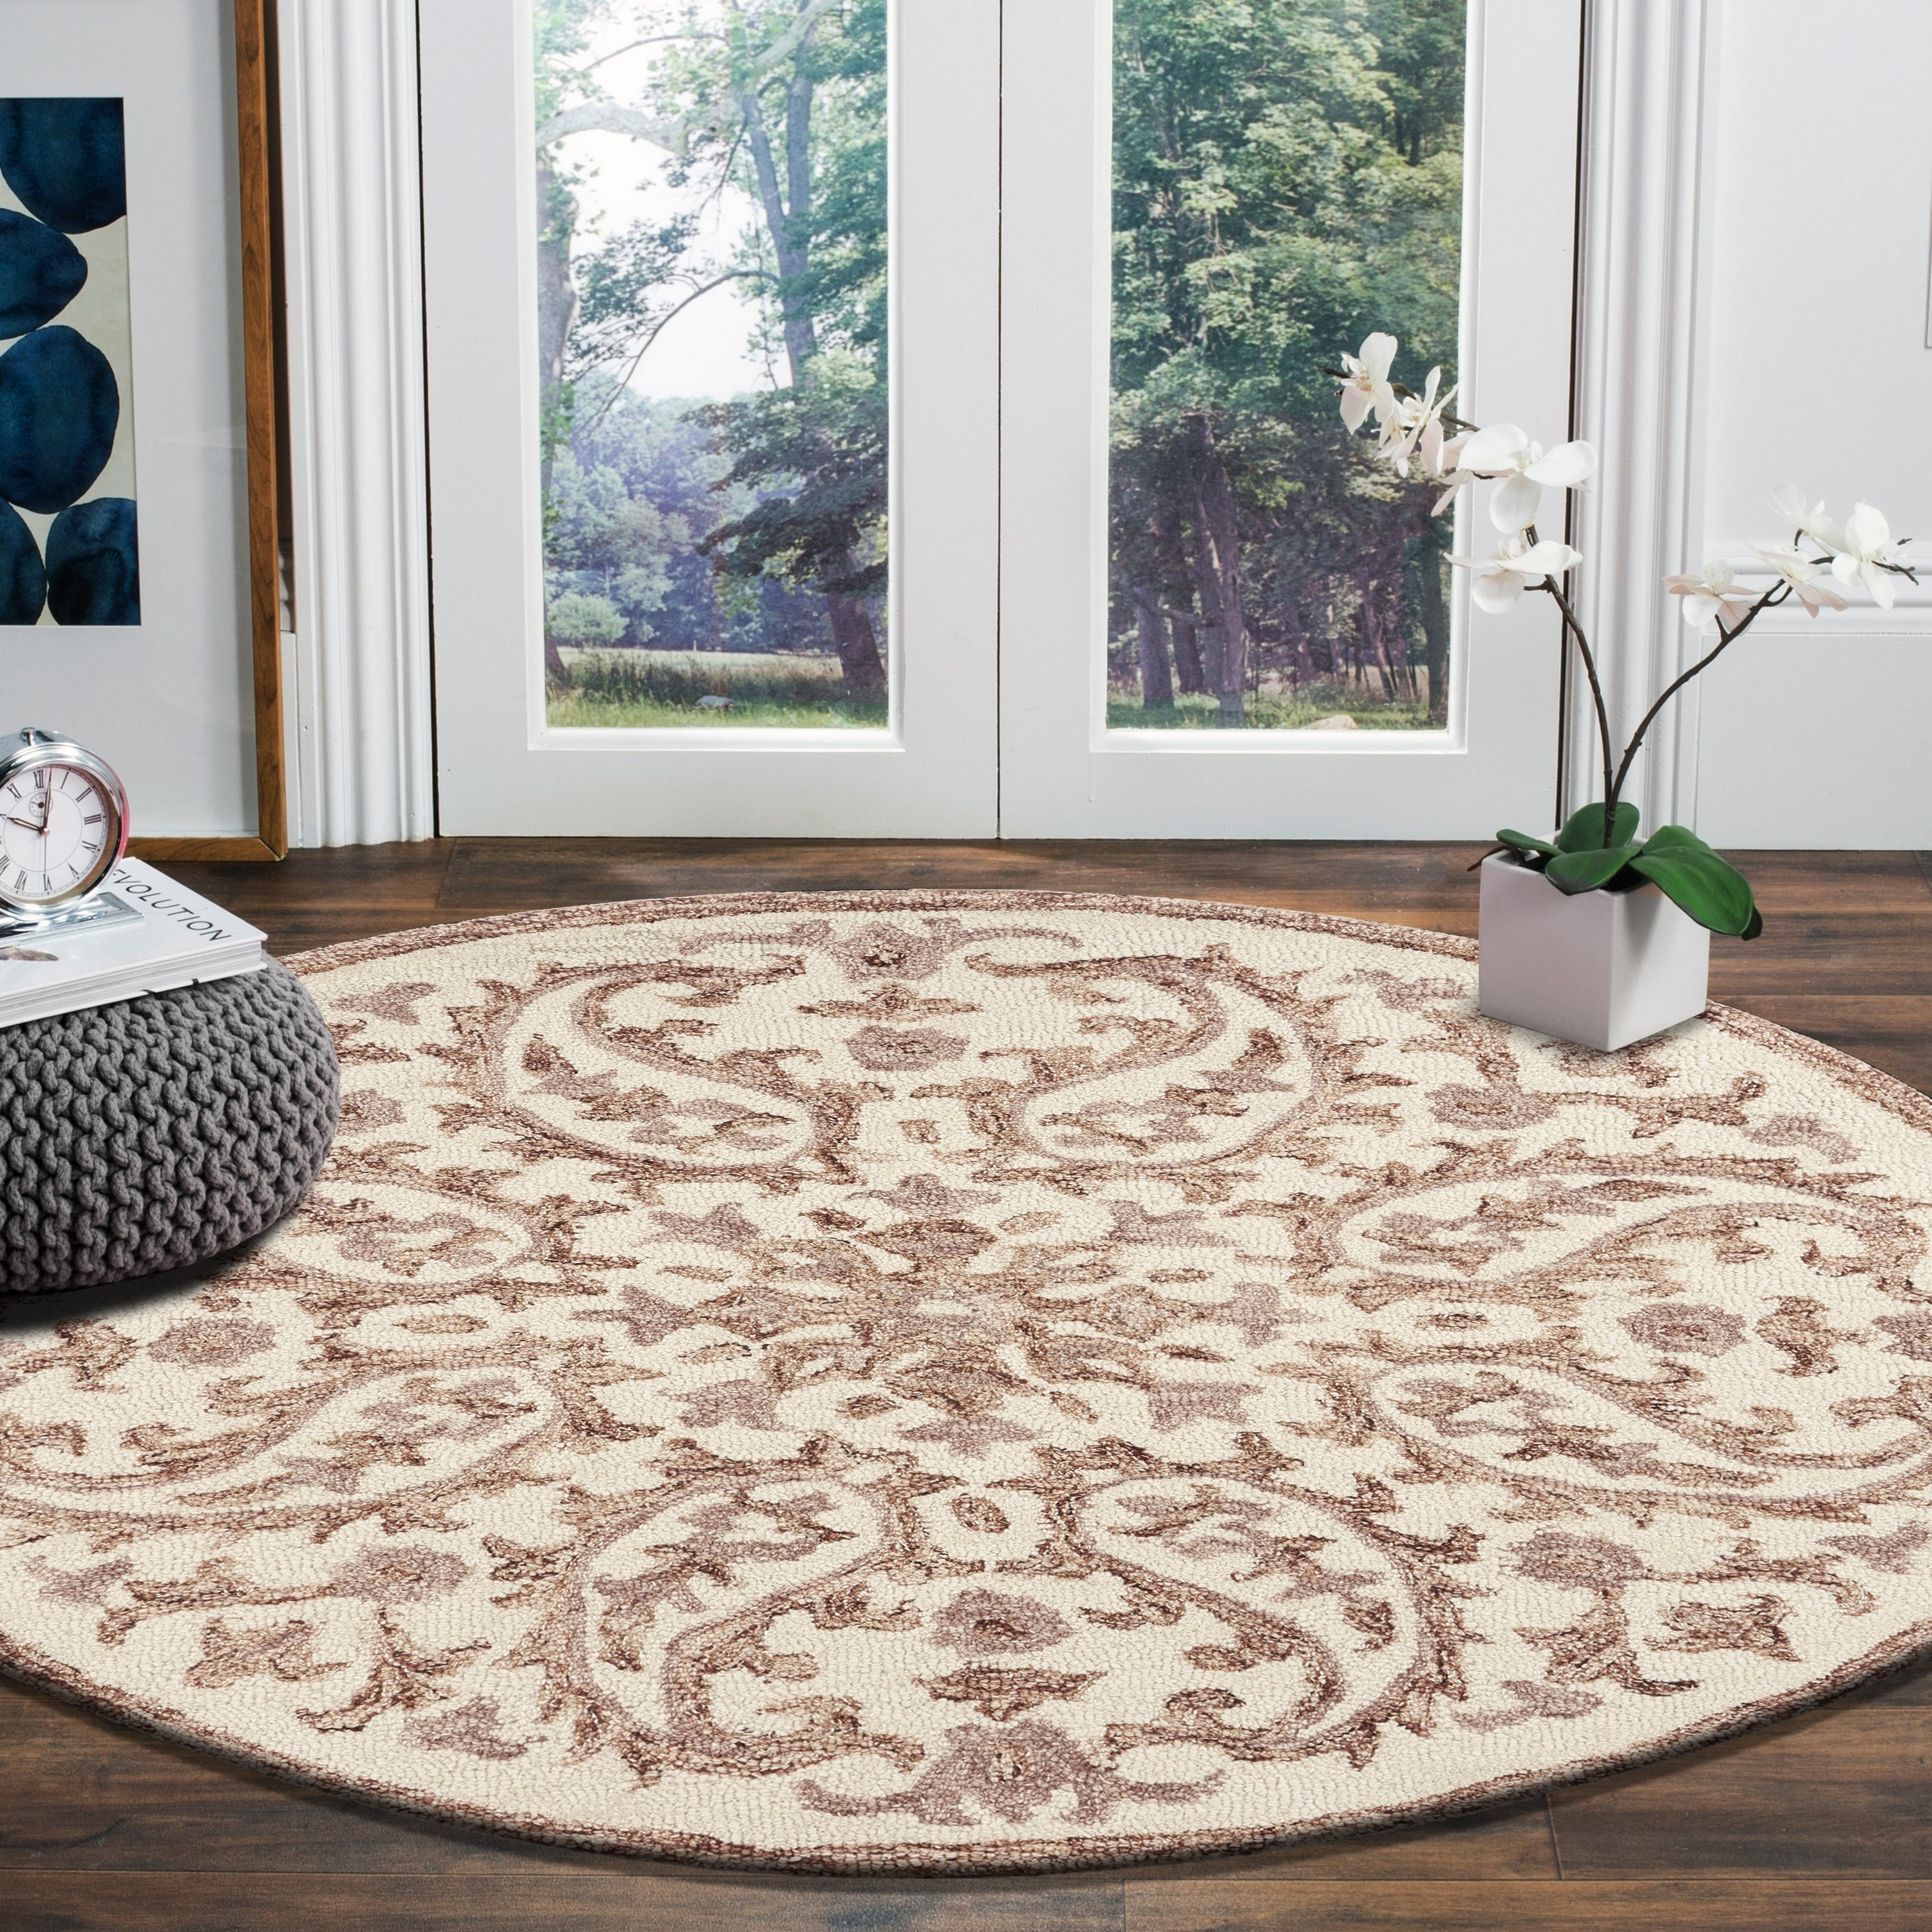 Lr Home Hand Tufted Dazzle Ivory Red Wool Rug On Sale Overstock 23150330 6 Round